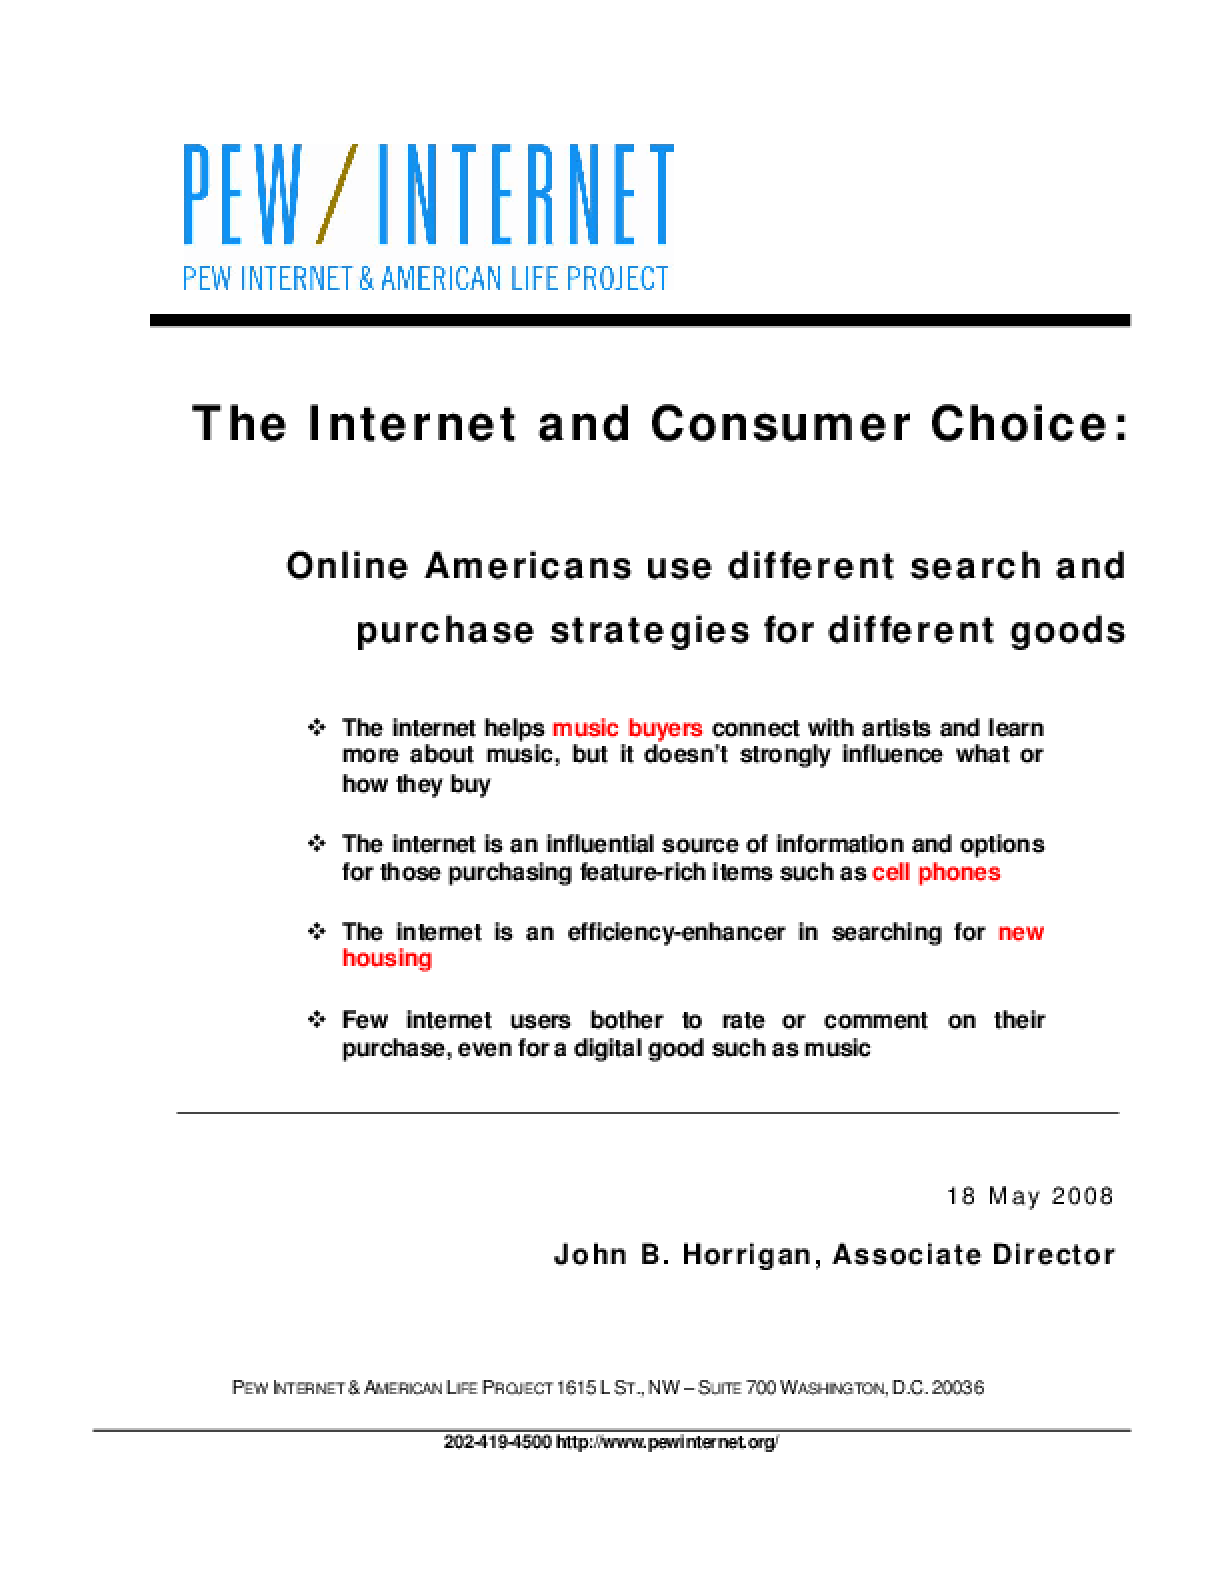 The Internet and Consumer Choice